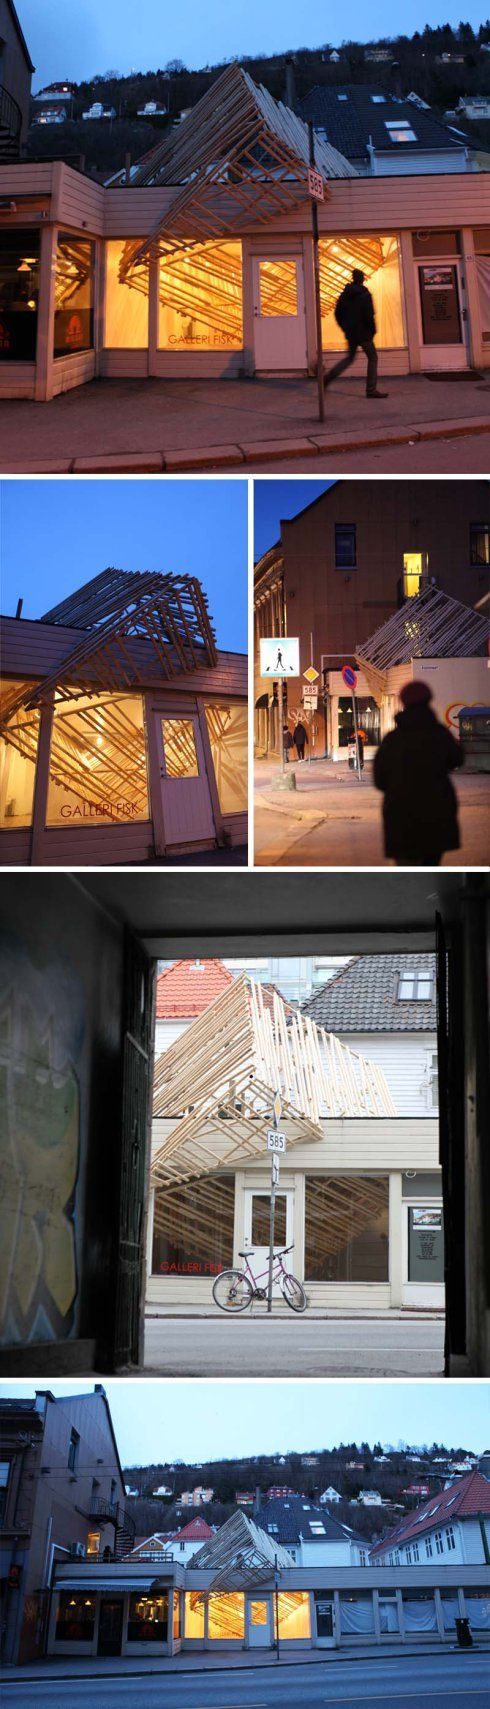 Fragile Invasion, Hidemi Nishida Studio, Norway, Cool wood structure through gallery roof